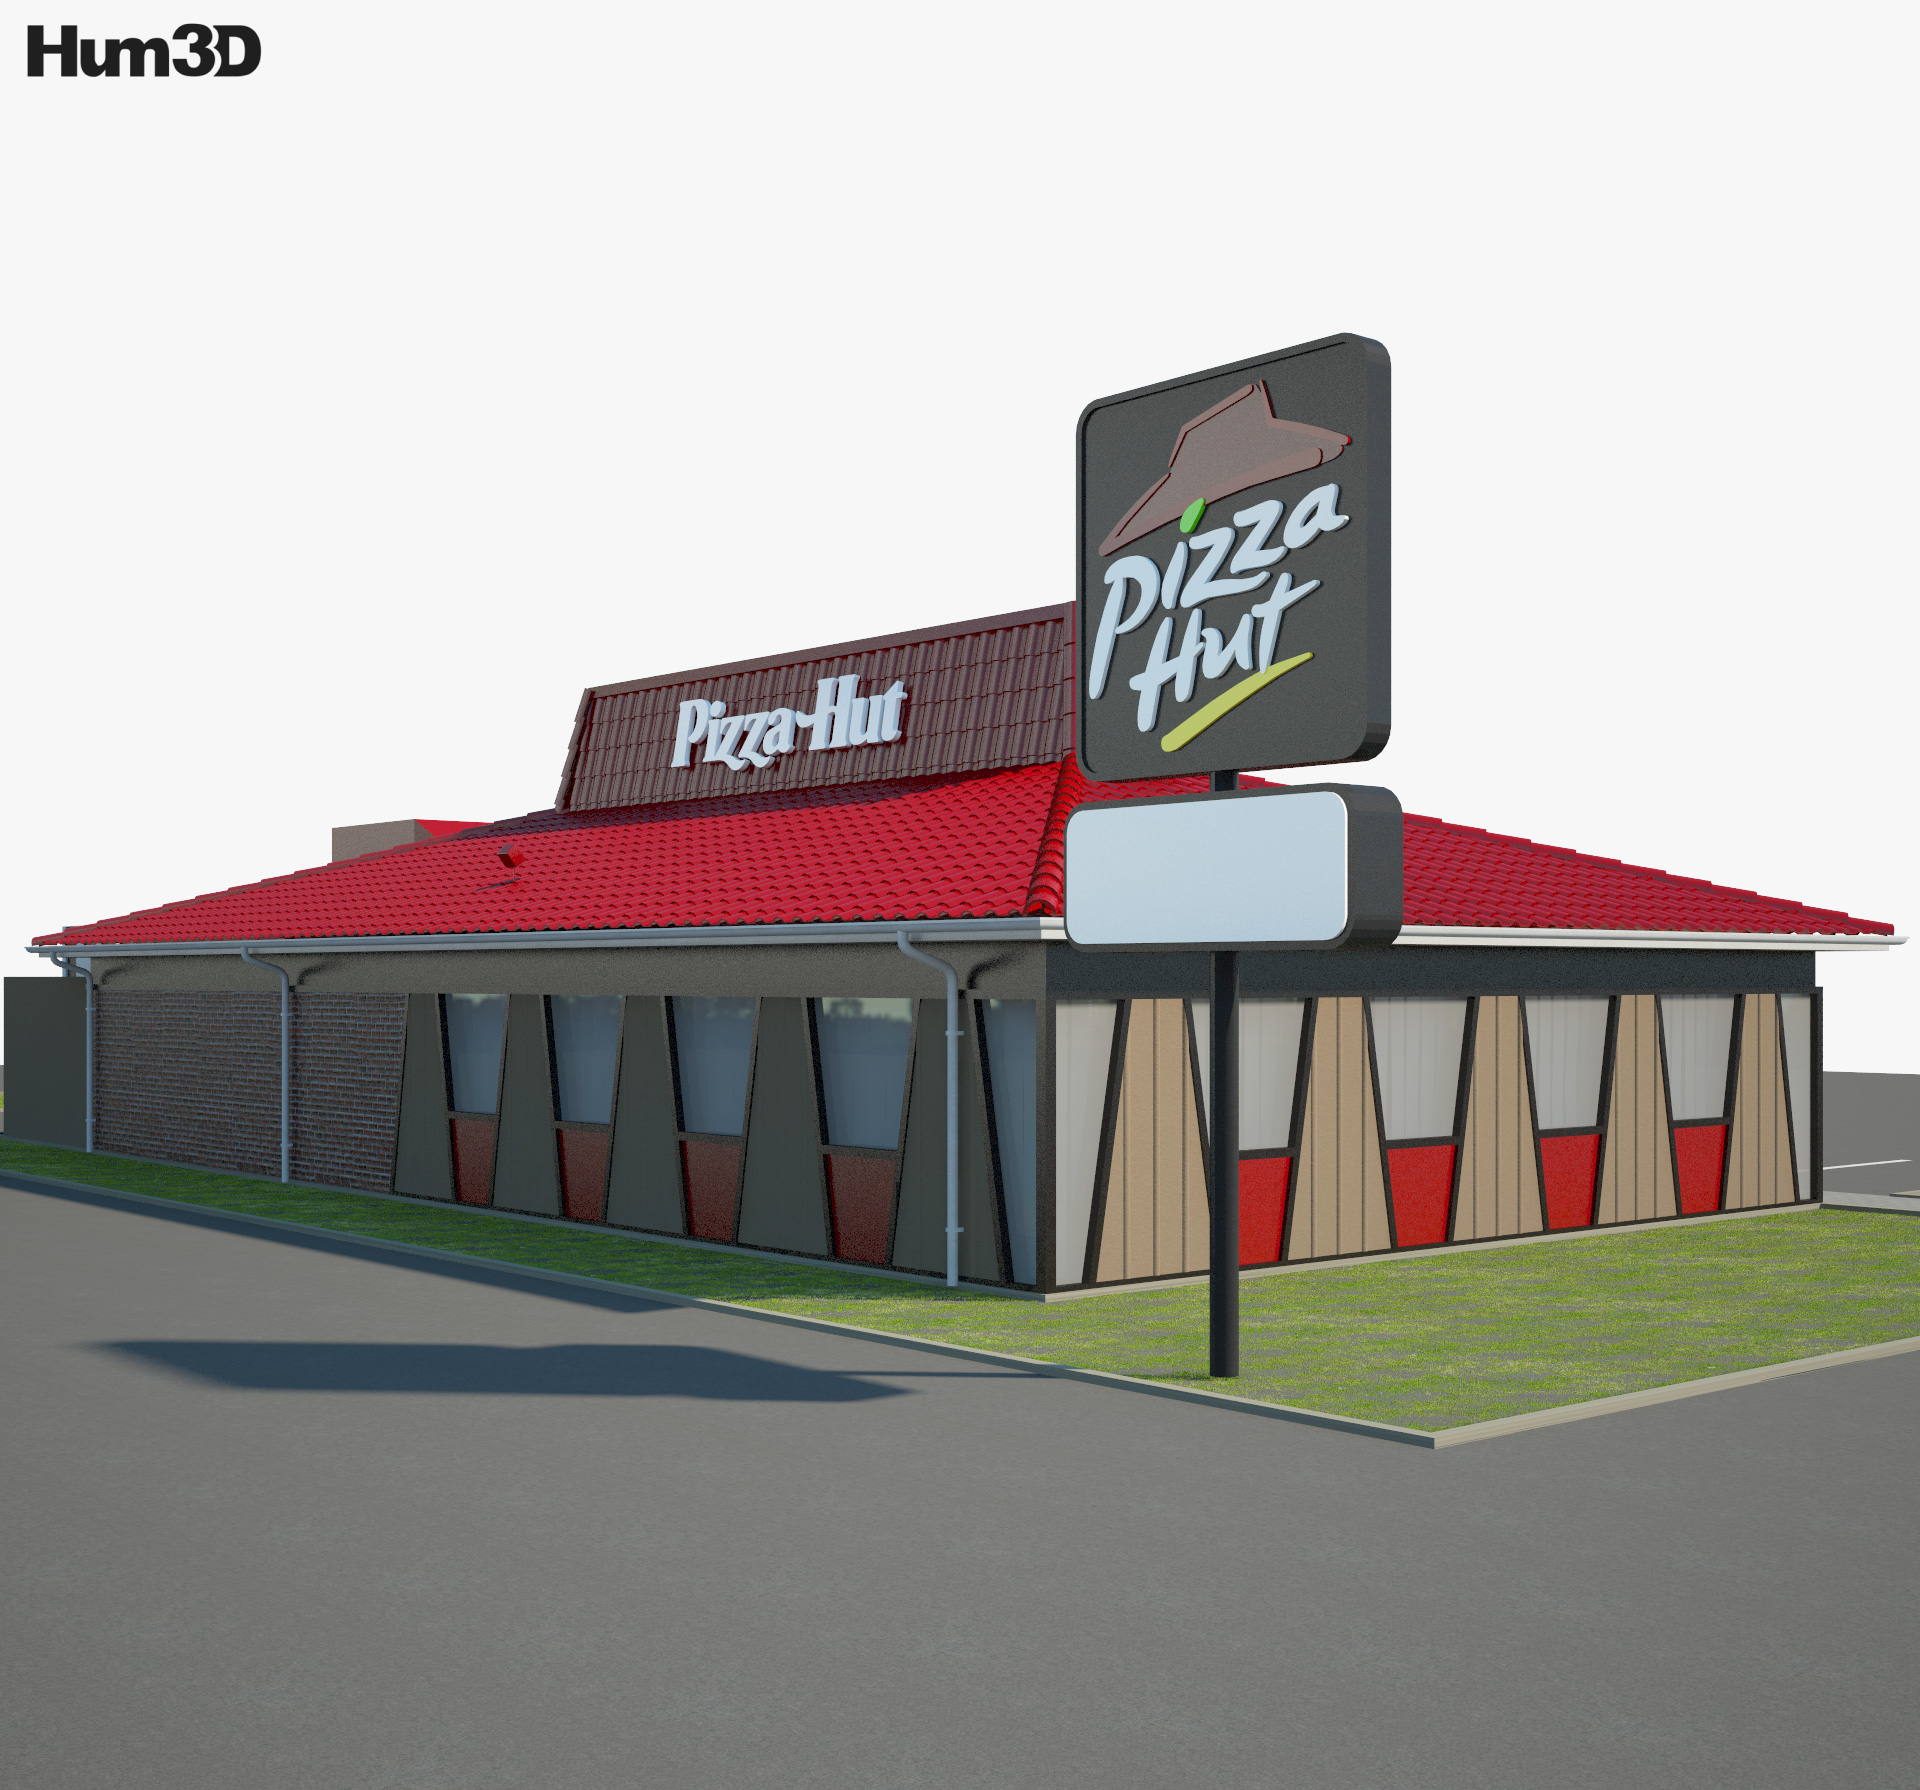 Pizza Hut Restaurant 02 3d model